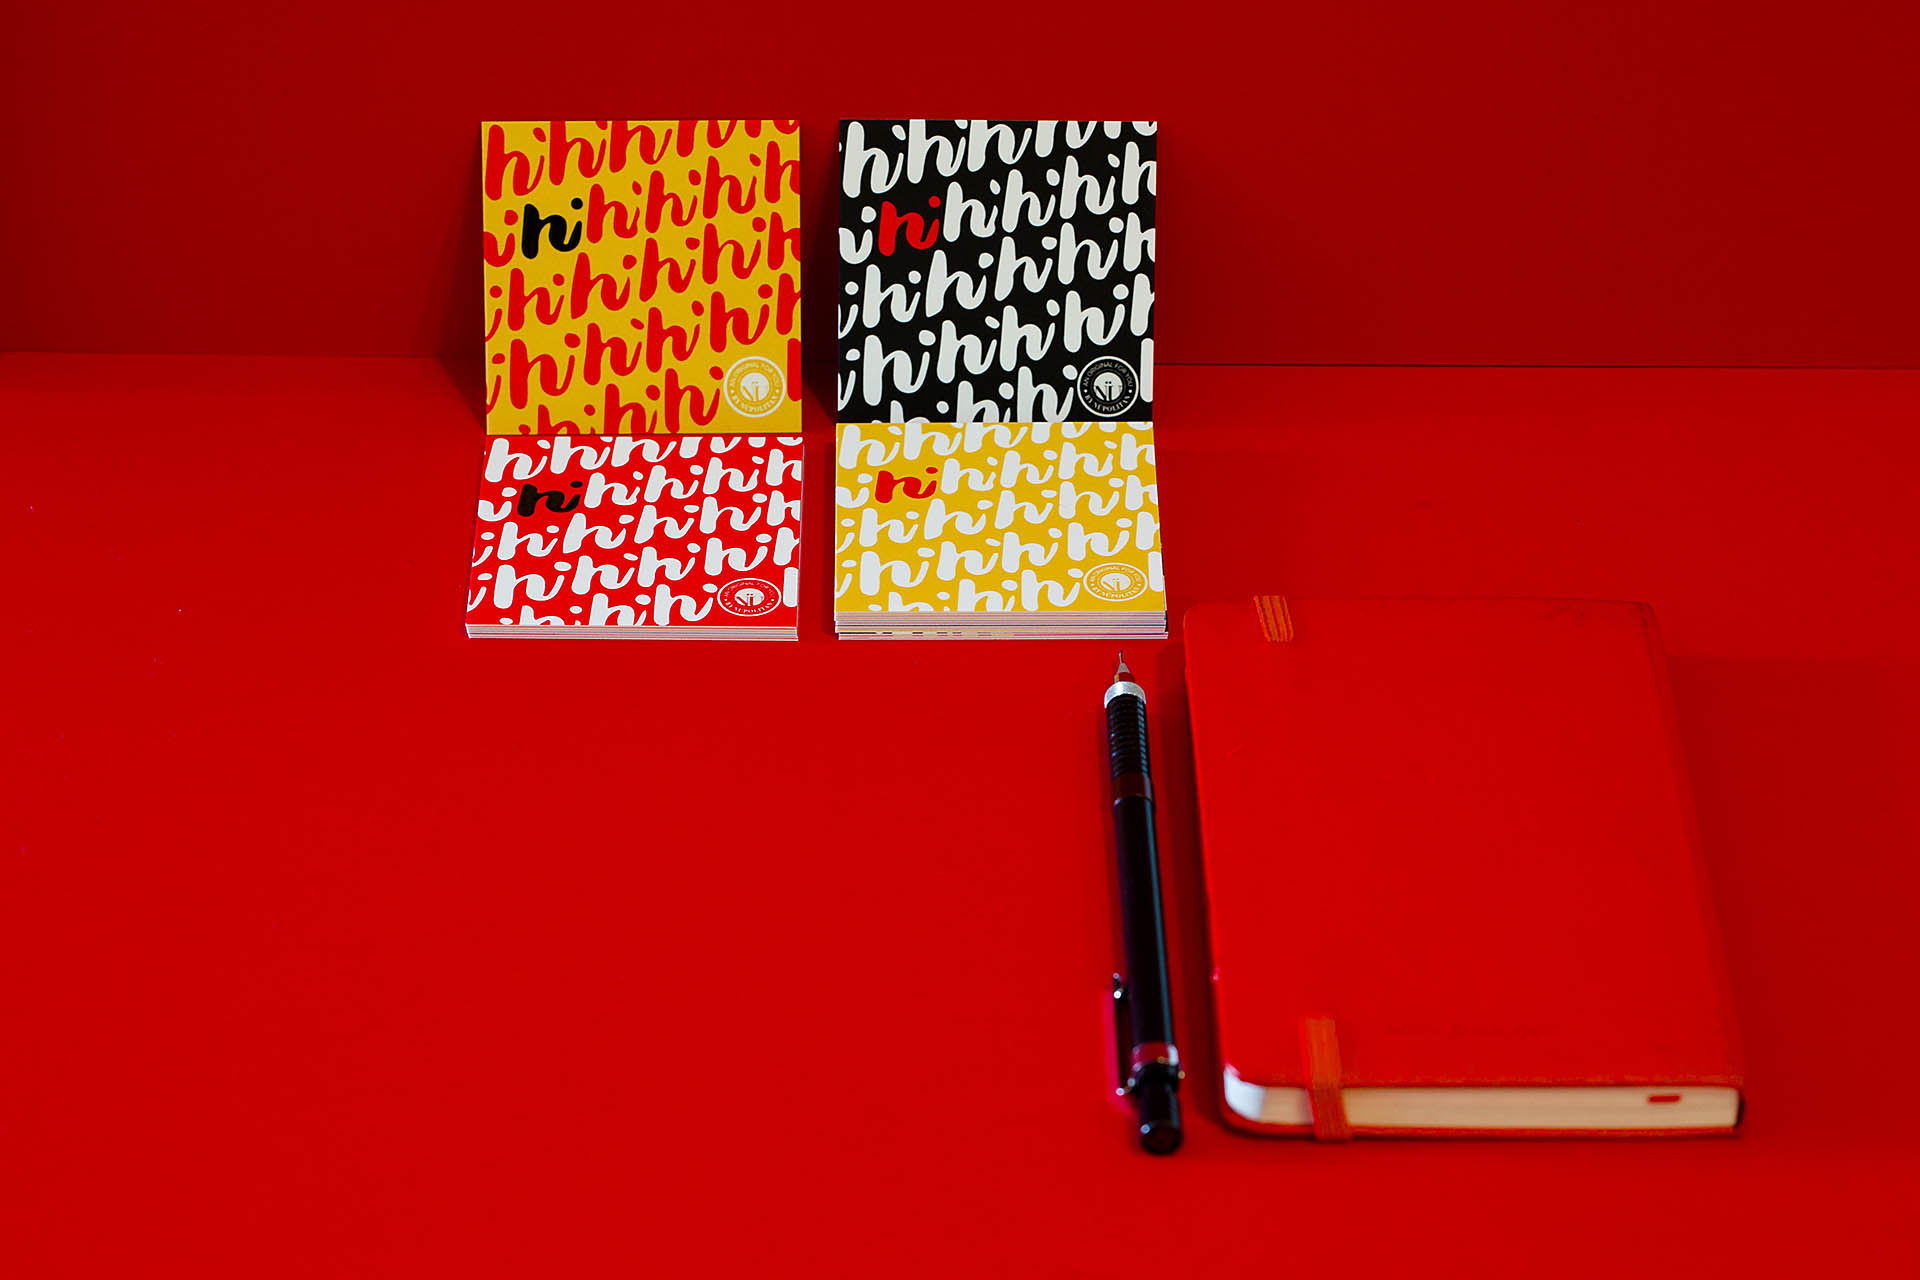 Four colorful cards covered with a repeating hi pattern, a red journal, and black pen on a red background